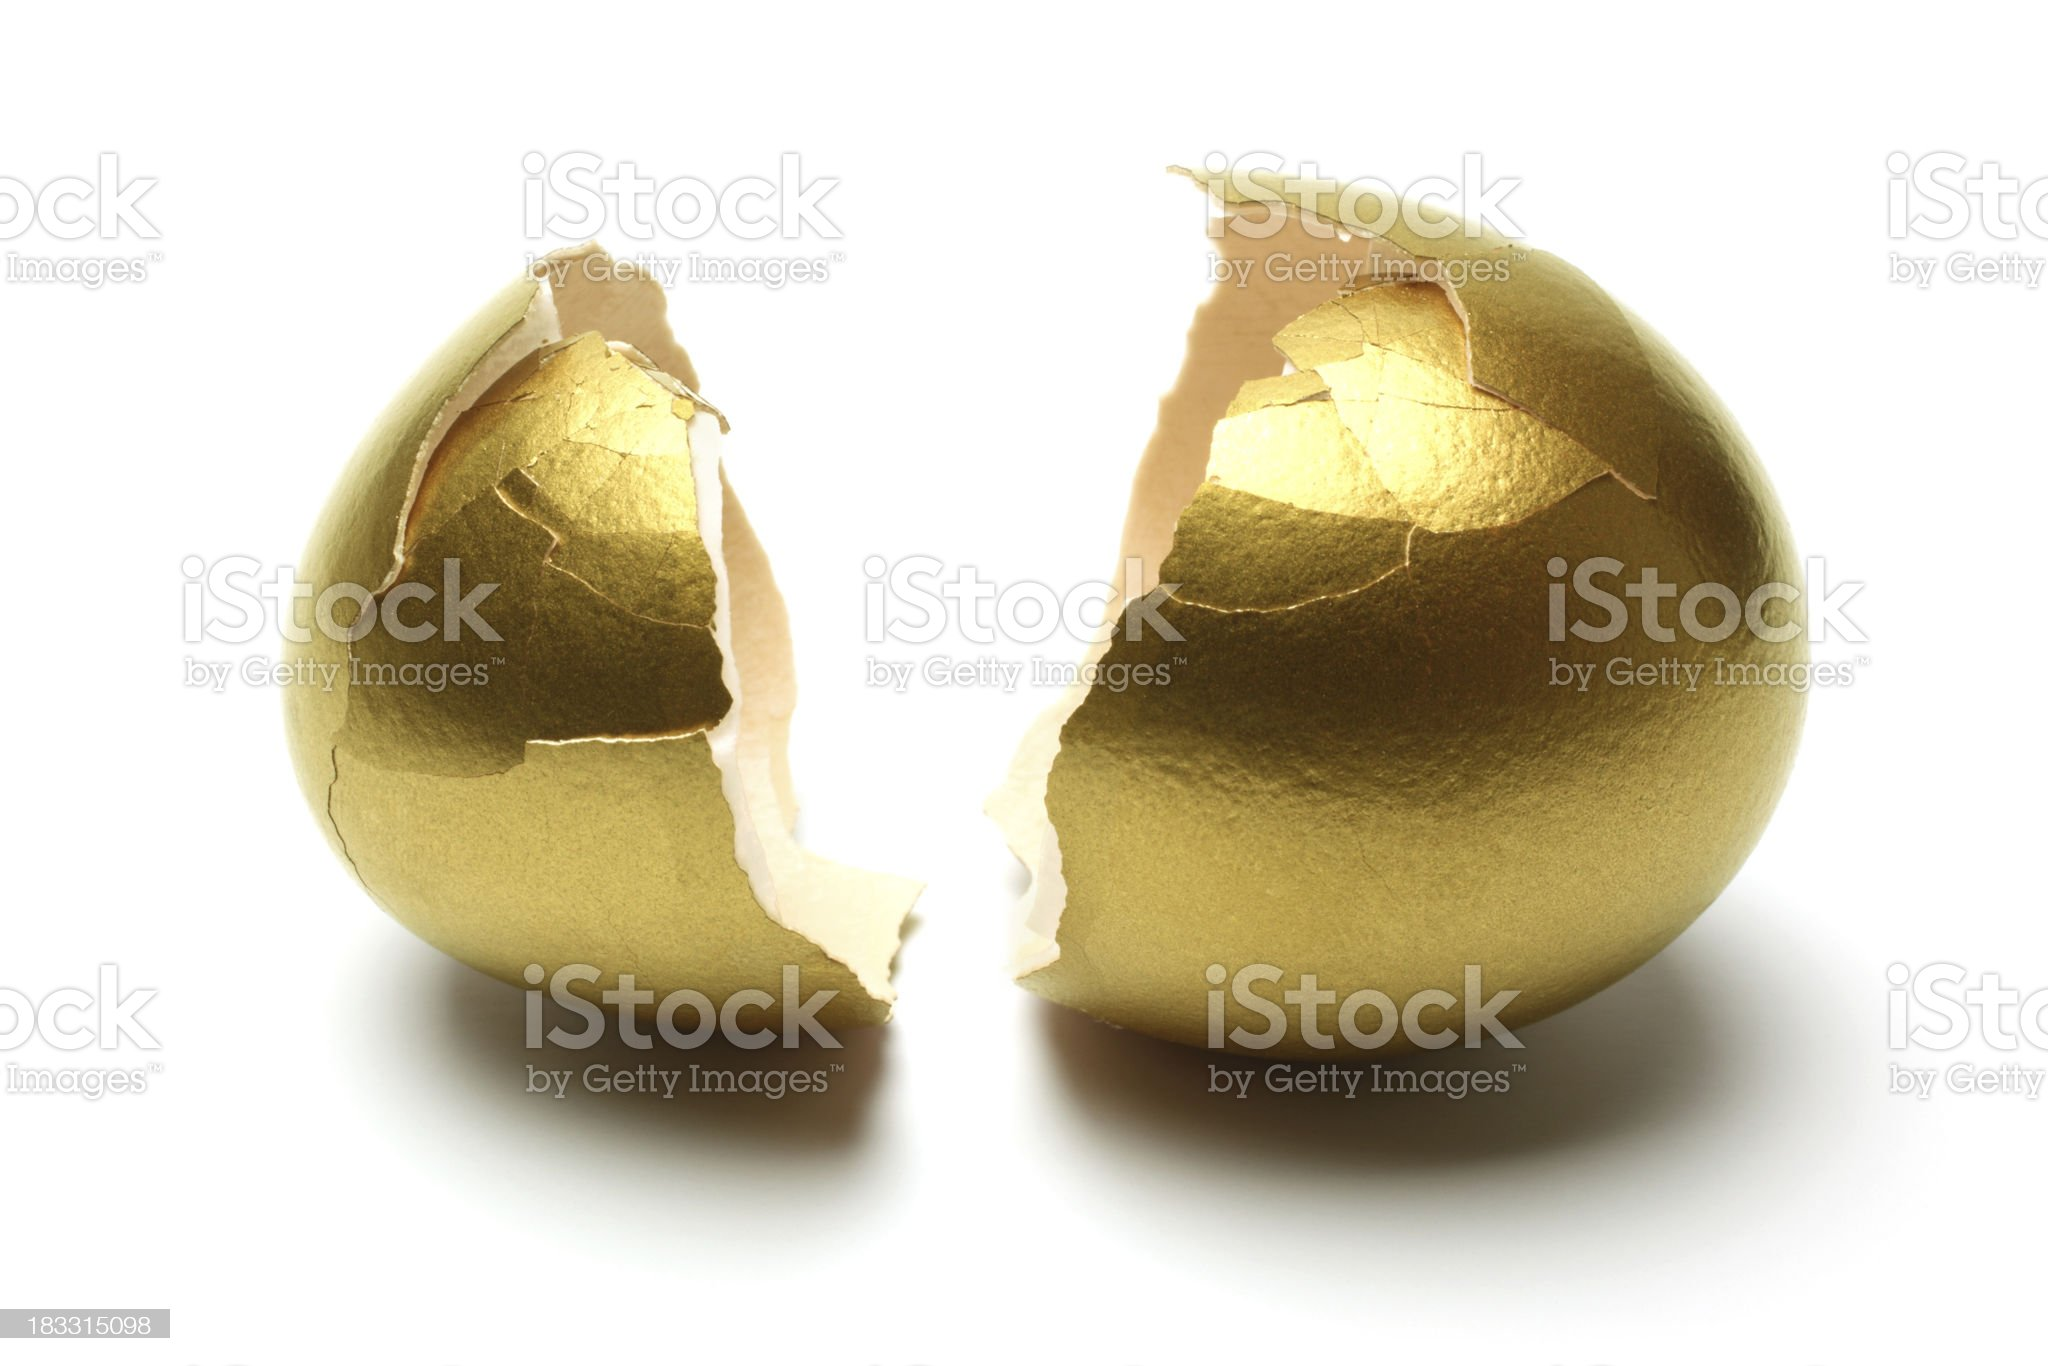 Crack Opened Gold Egg on White Background royalty-free stock photo